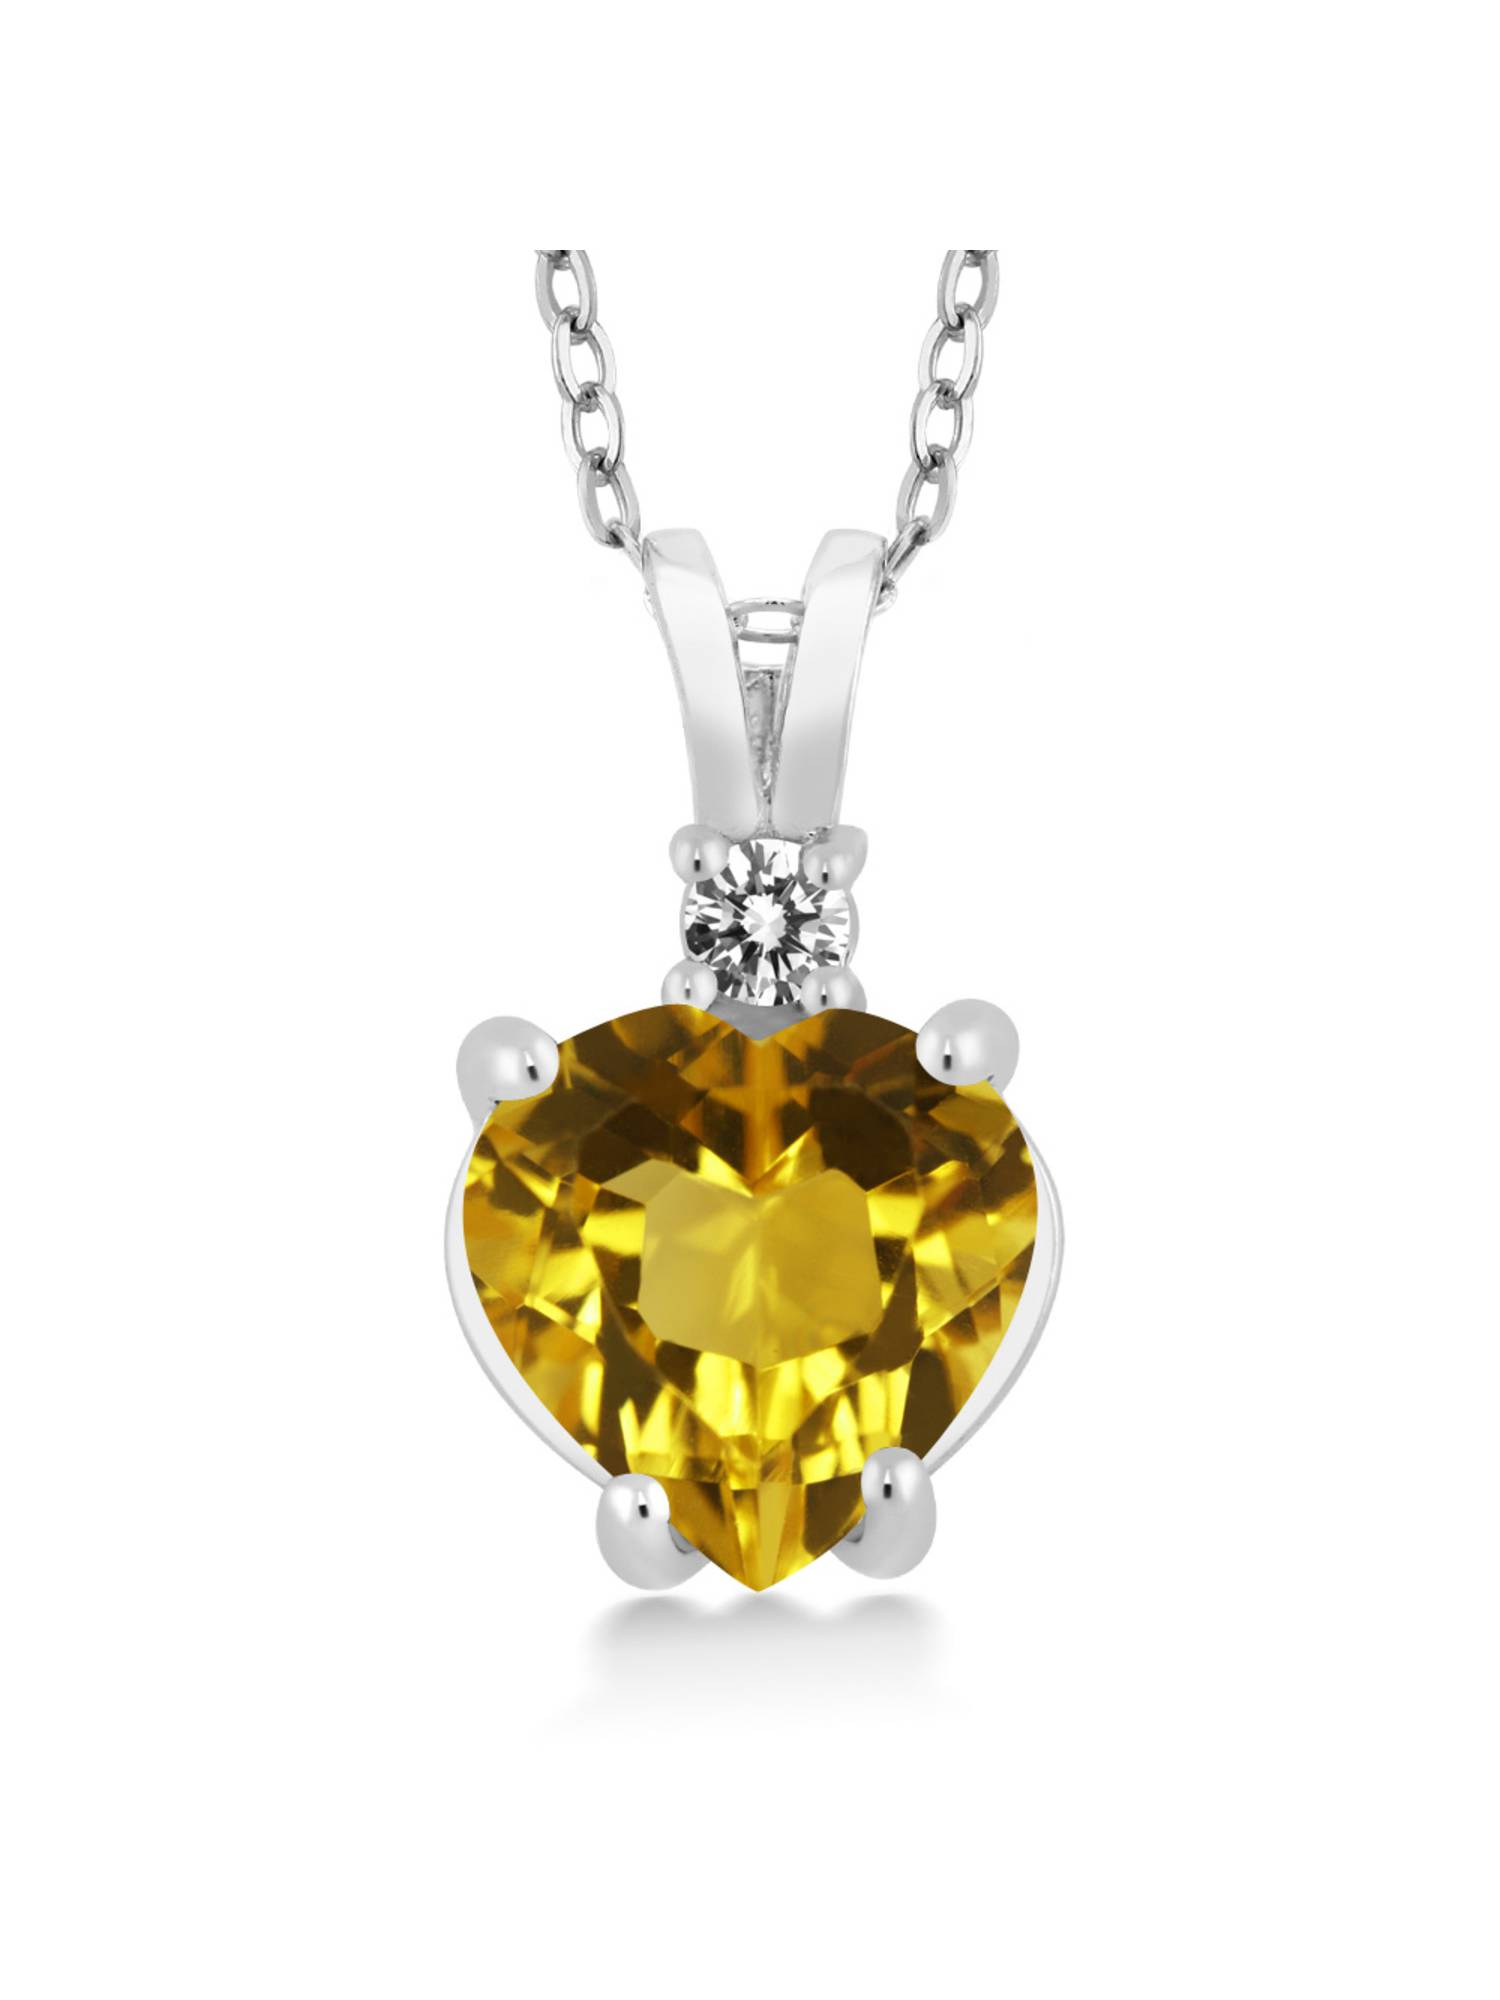 14K White Gold Heart Pendant set with 1.67 Ct Yellow Citrine & White Diamond by